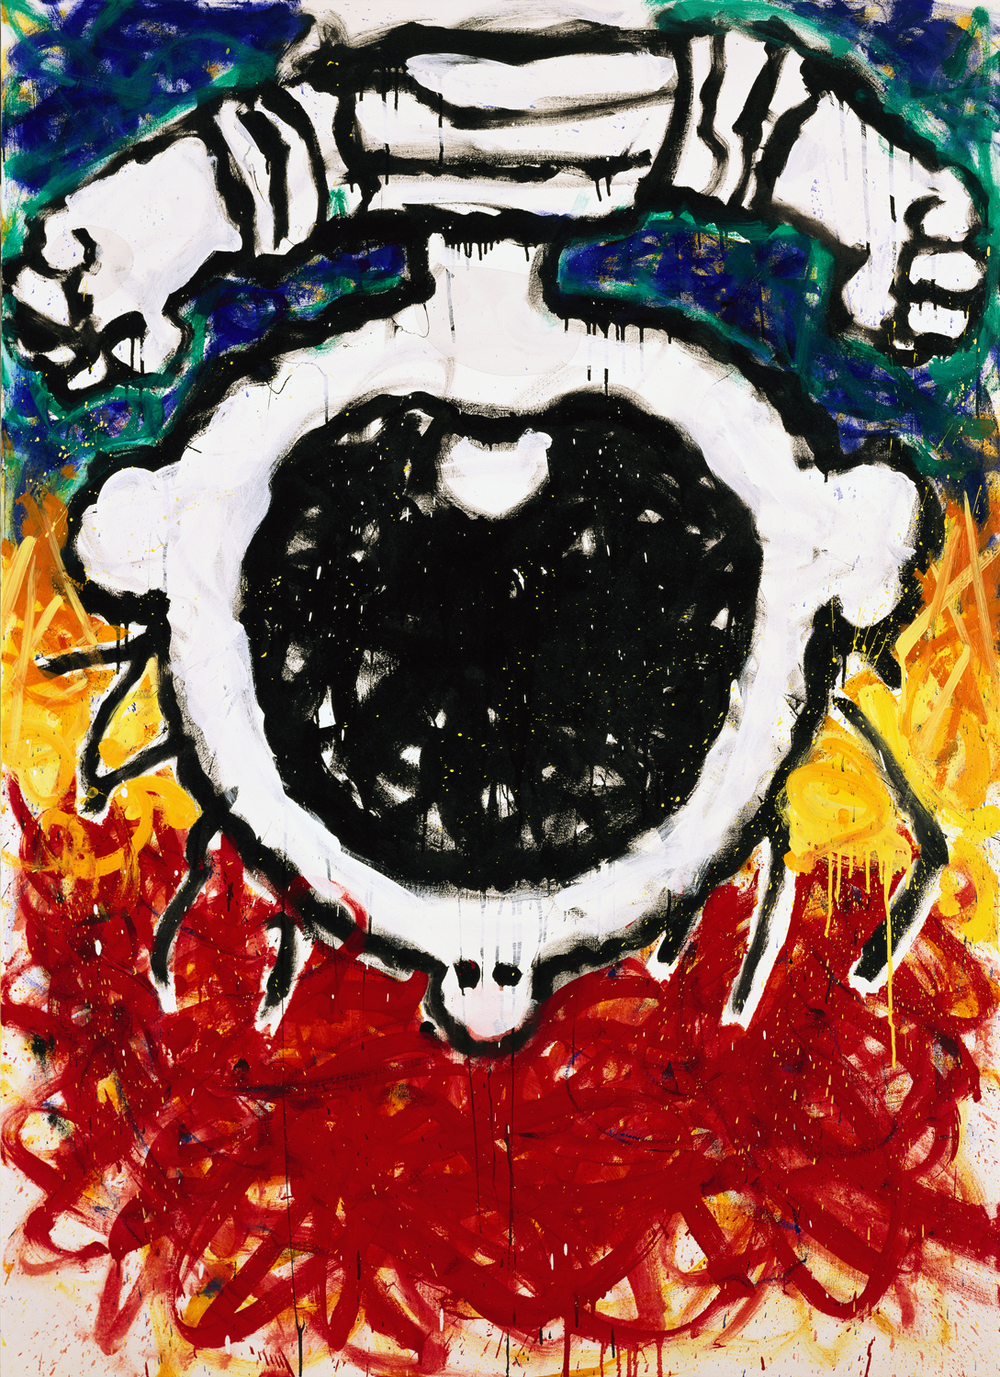 The Upside Down Scream | oil and varnish on canvas | 72″ x 52″ | 1995